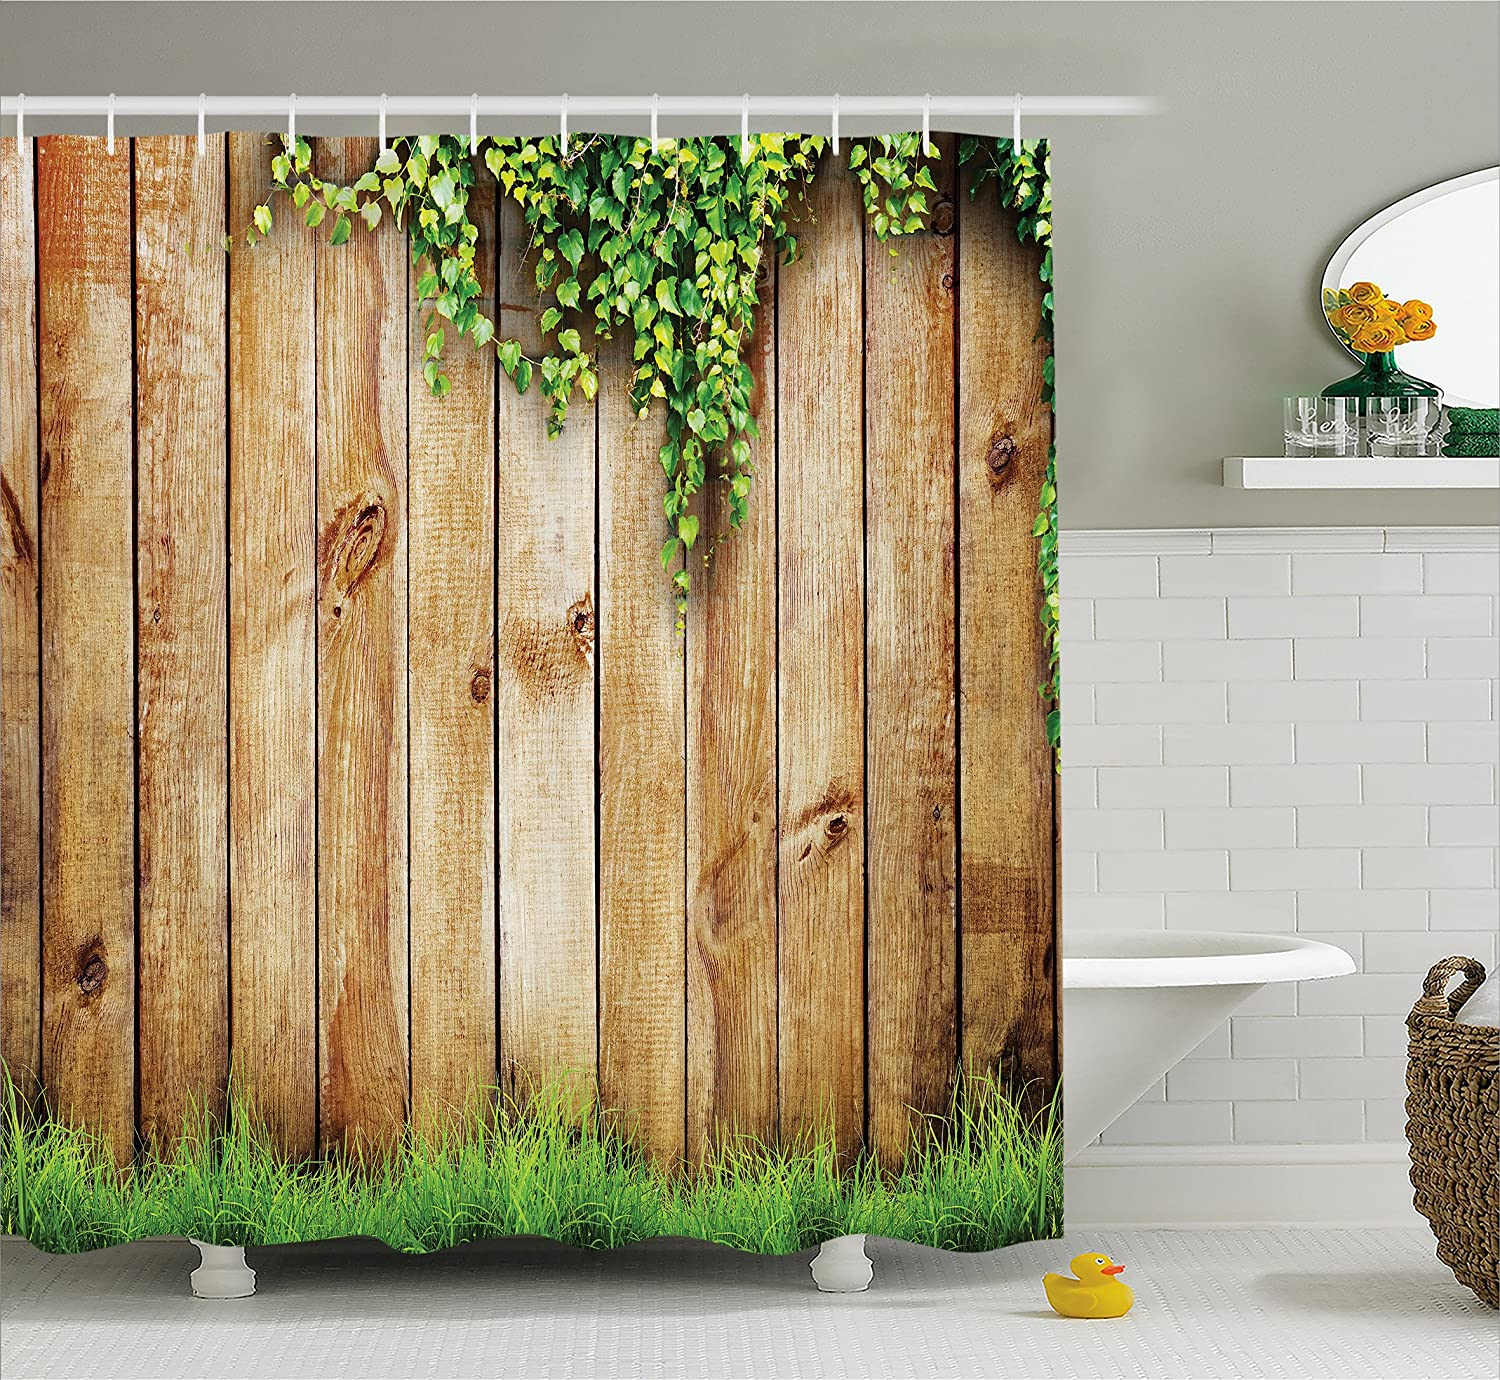 "Ambesonne Rustic Shower Curtain, Fresh Spring Season Grass and Leaf Plant Over Old Wood Fence Garden Field Photo, Cloth Fabric Bathroom Decor Set with Hooks, 70"" Long, Green Brown"